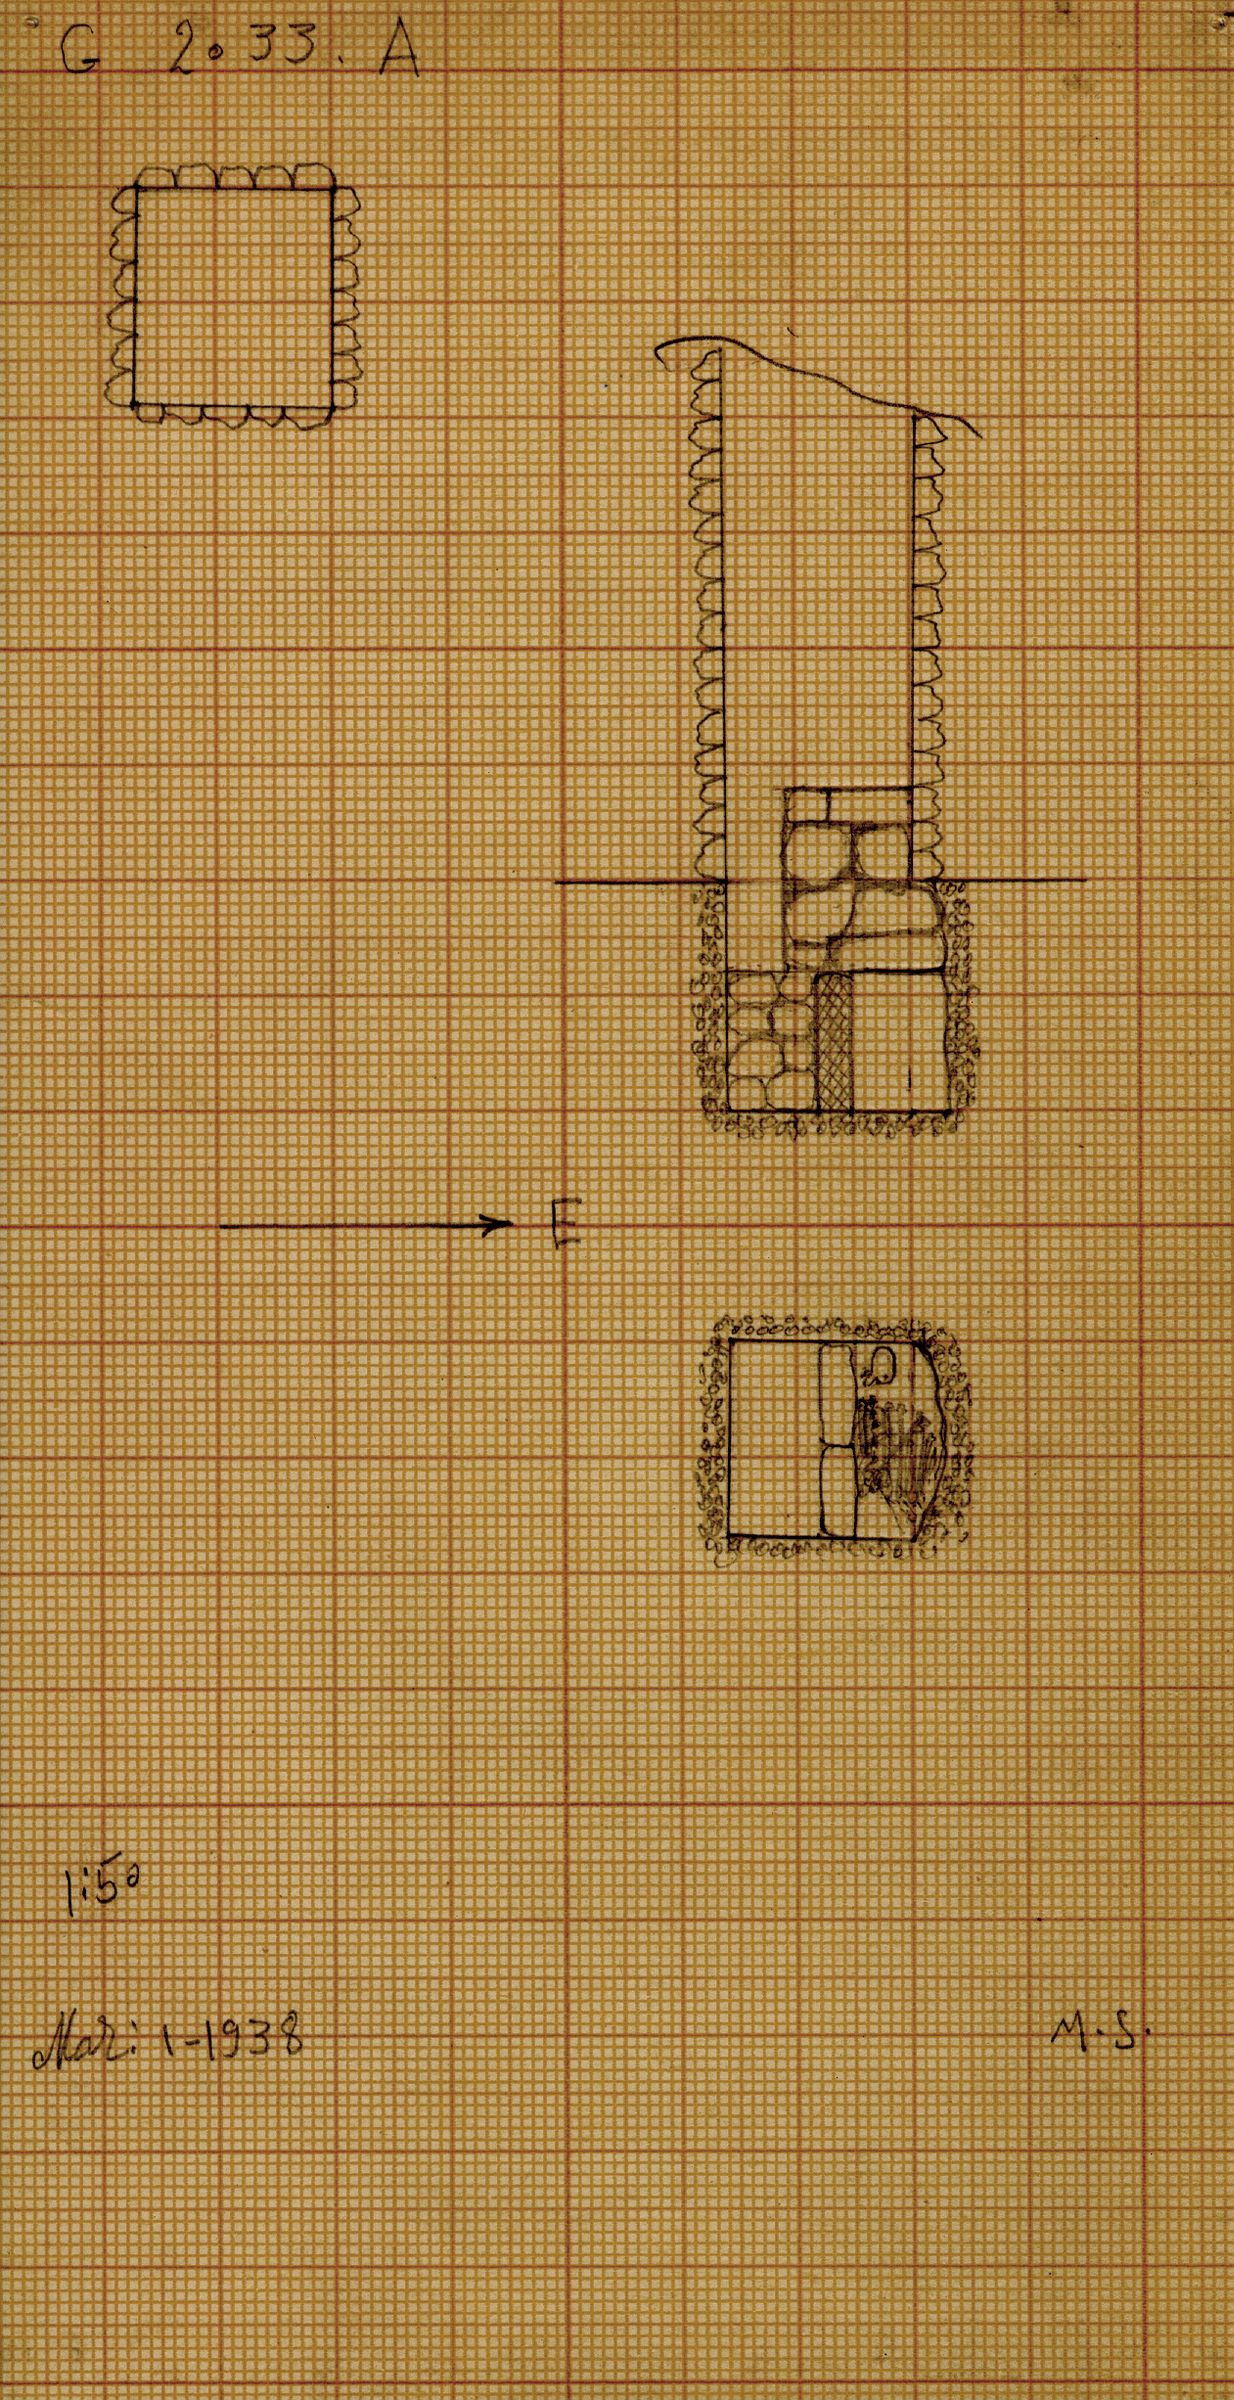 Maps and plans: G 2033, Shaft A